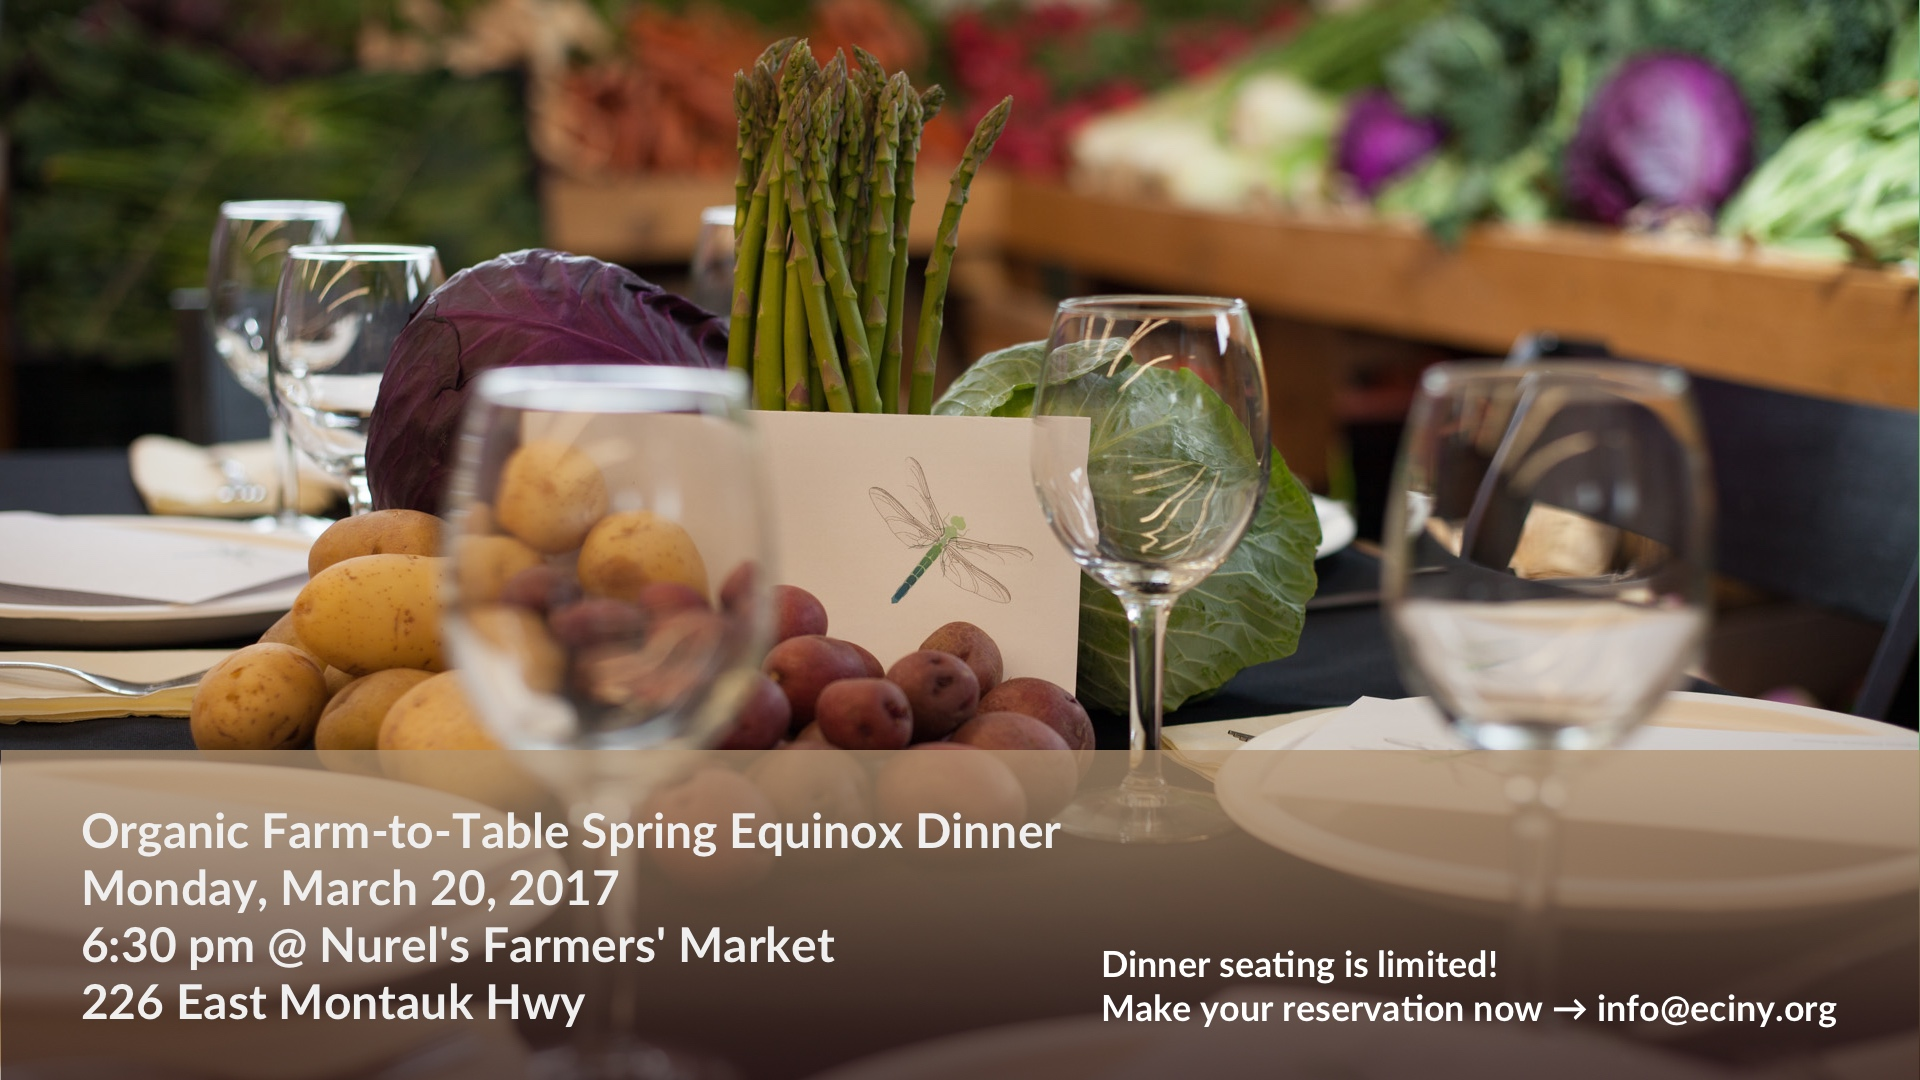 Farm-to-Table Spring Equinox Dinner - March 20th, 2017 - FB cover 1920x1080.jpg